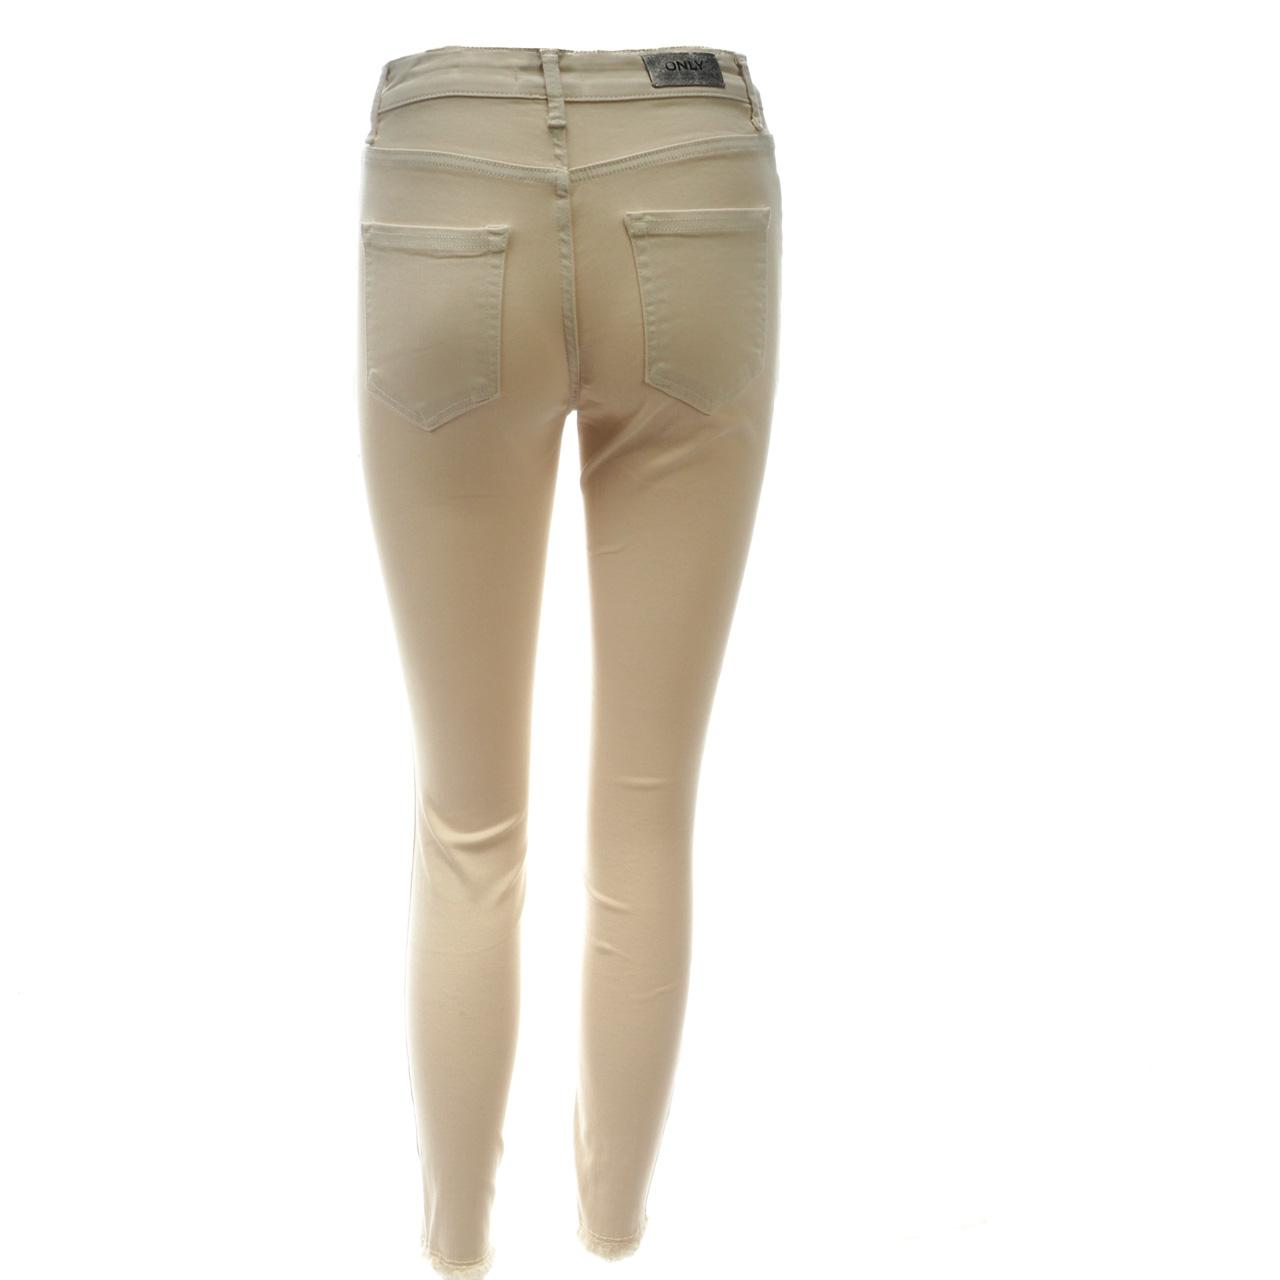 Trousers-Slim-Jeans-only-Blush-32-Egret-Jeans-L-Beige-18666-New thumbnail 2